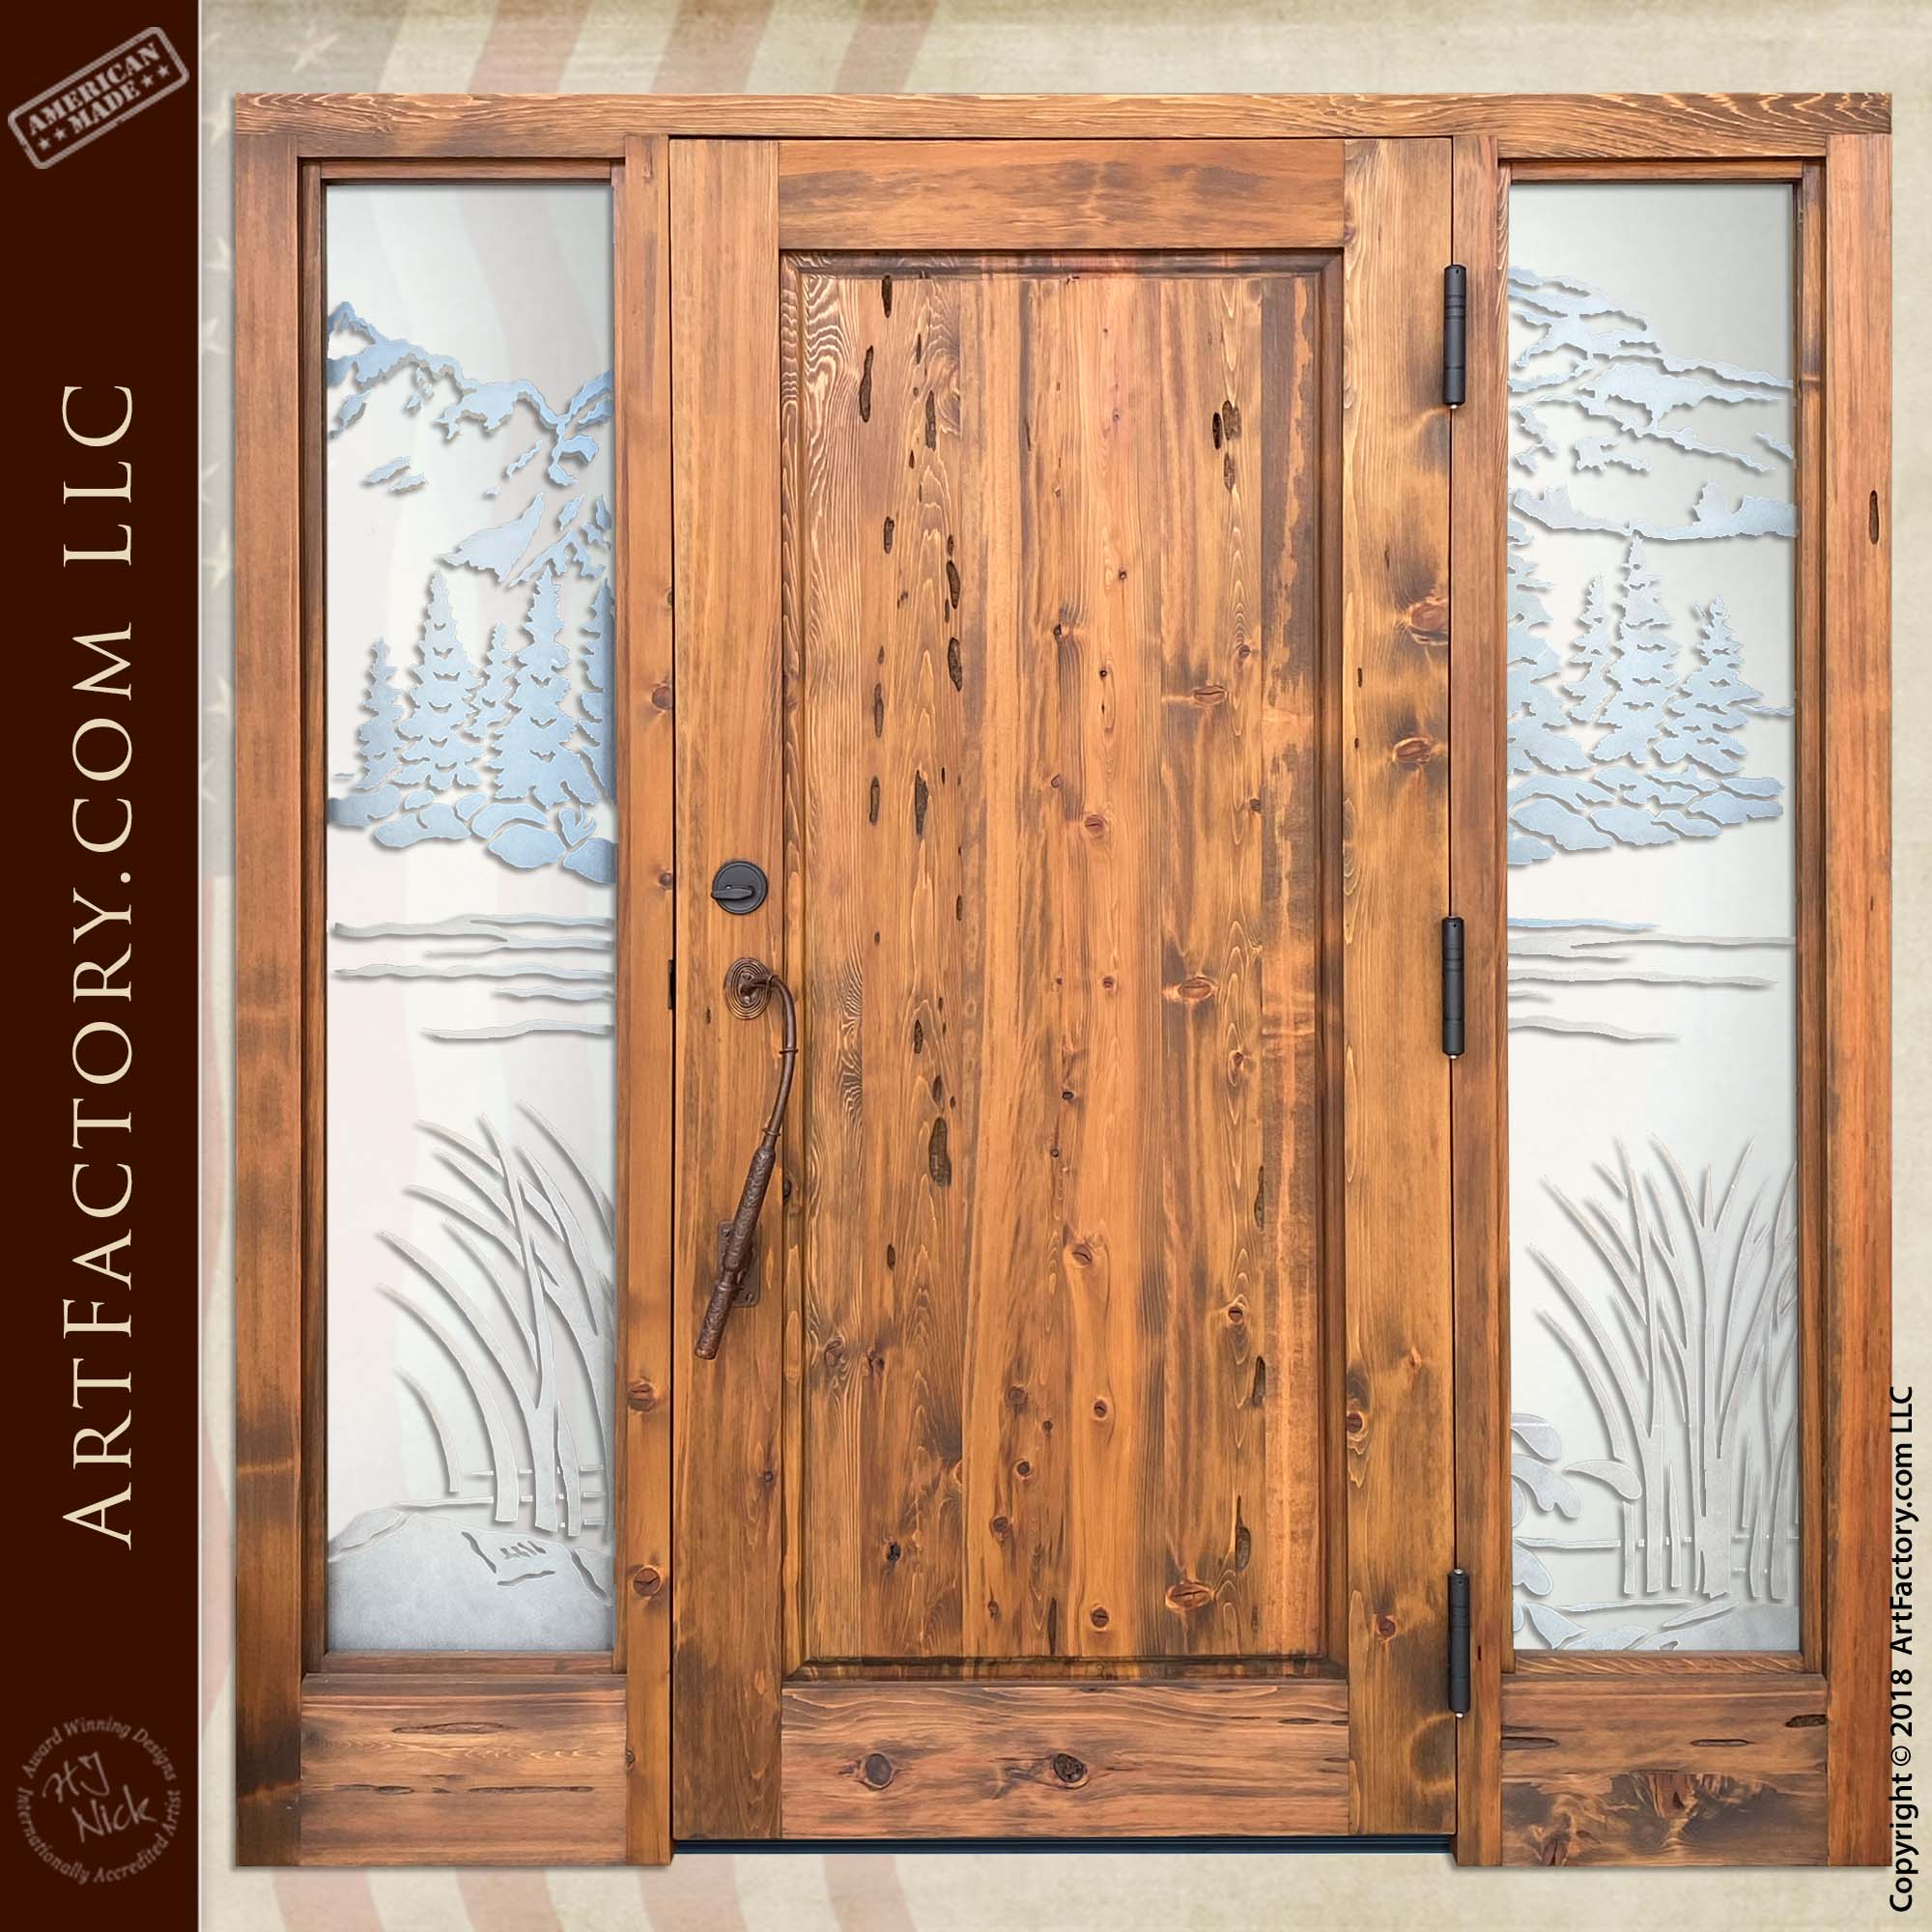 Bass Fishing Carved Door back